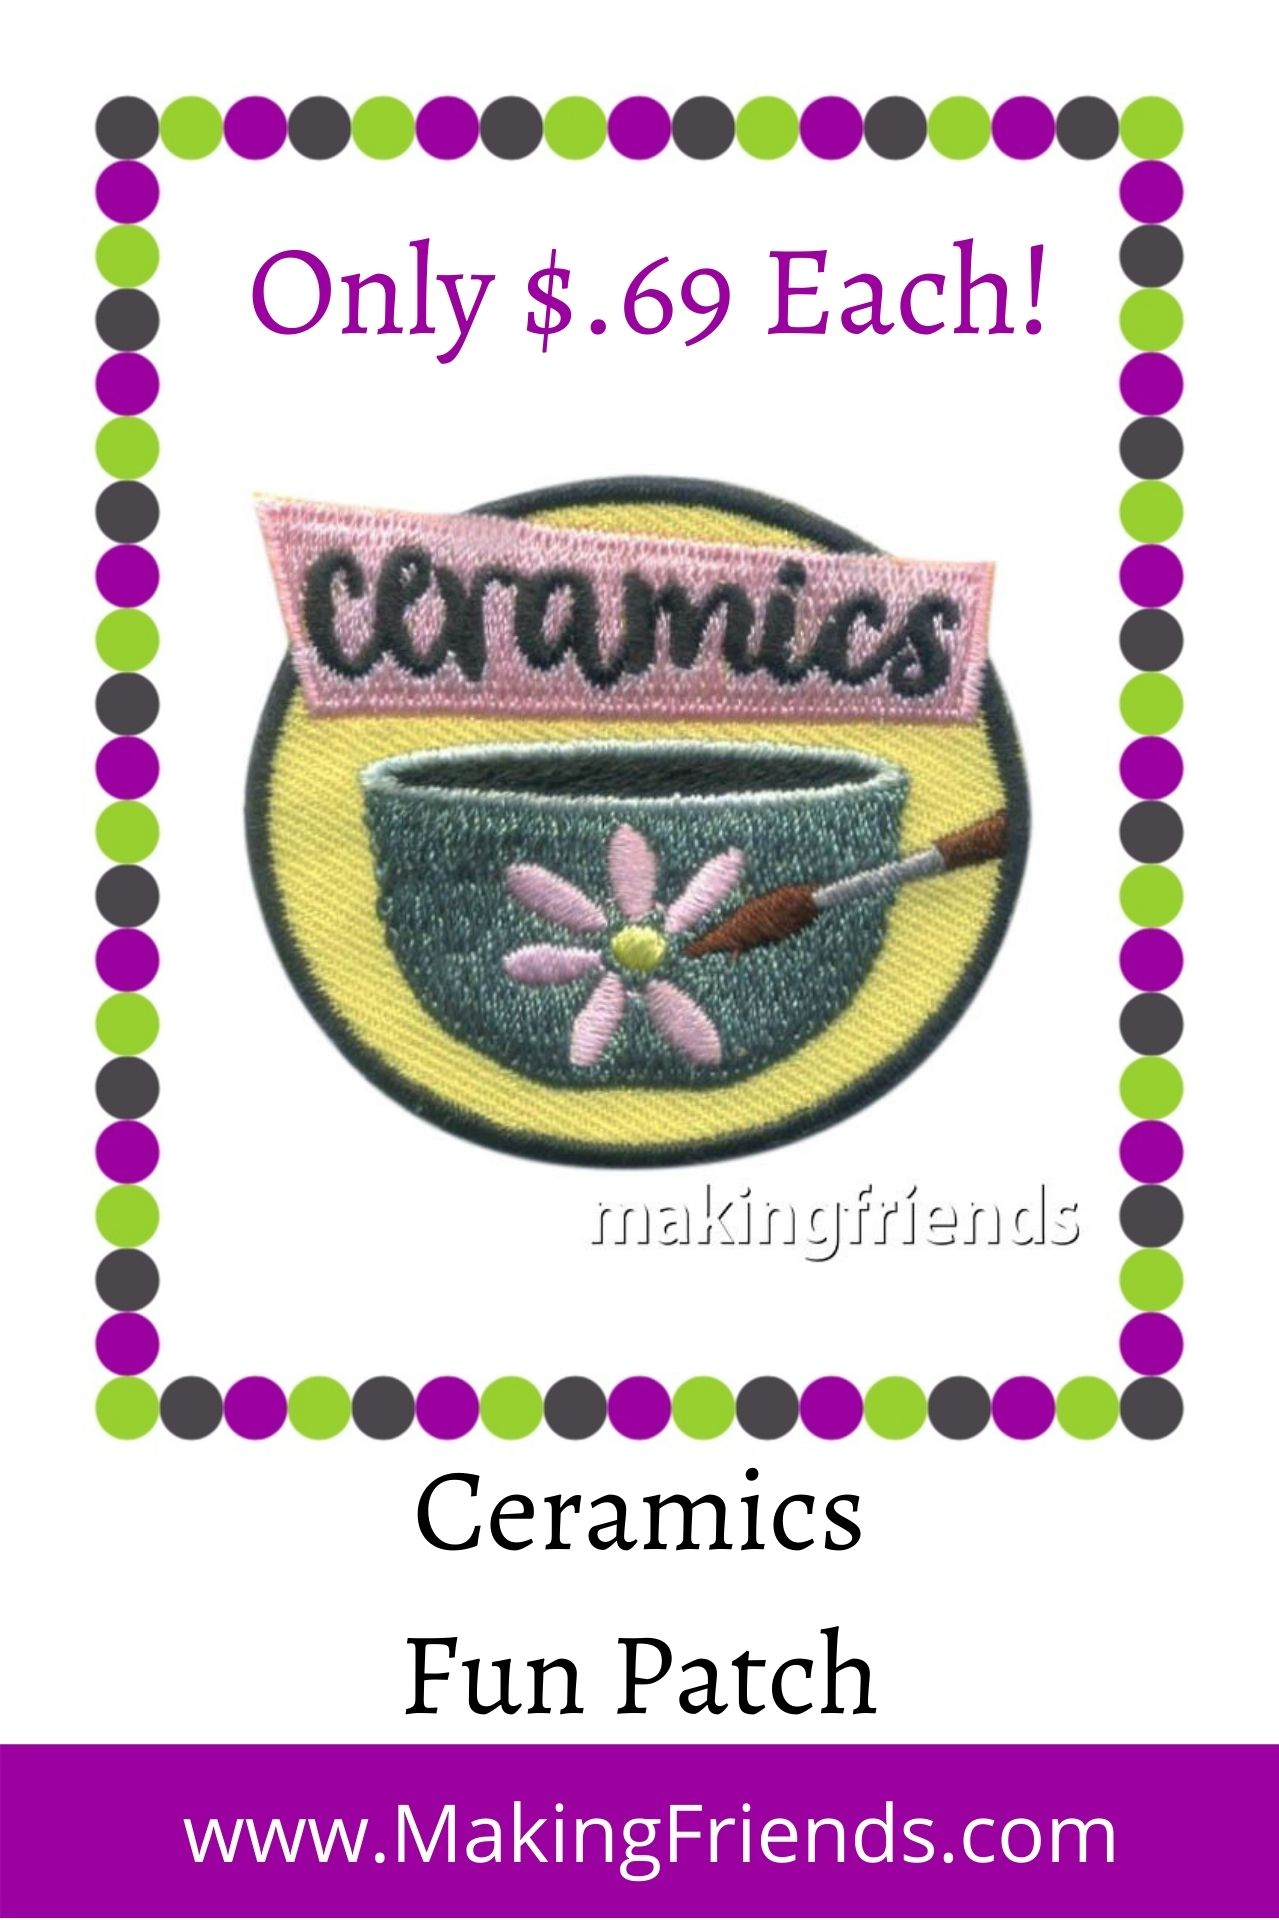 Take a trip to paint ceramics! They will love to take their piece home with this patch! It's only $.69 each, free shipping available! #makingfriends #ceramics #painting #crafts #girlscouts #girlscoutpatches #gscrafts #funpatch #girlscoutfunpatches via @gsleader411